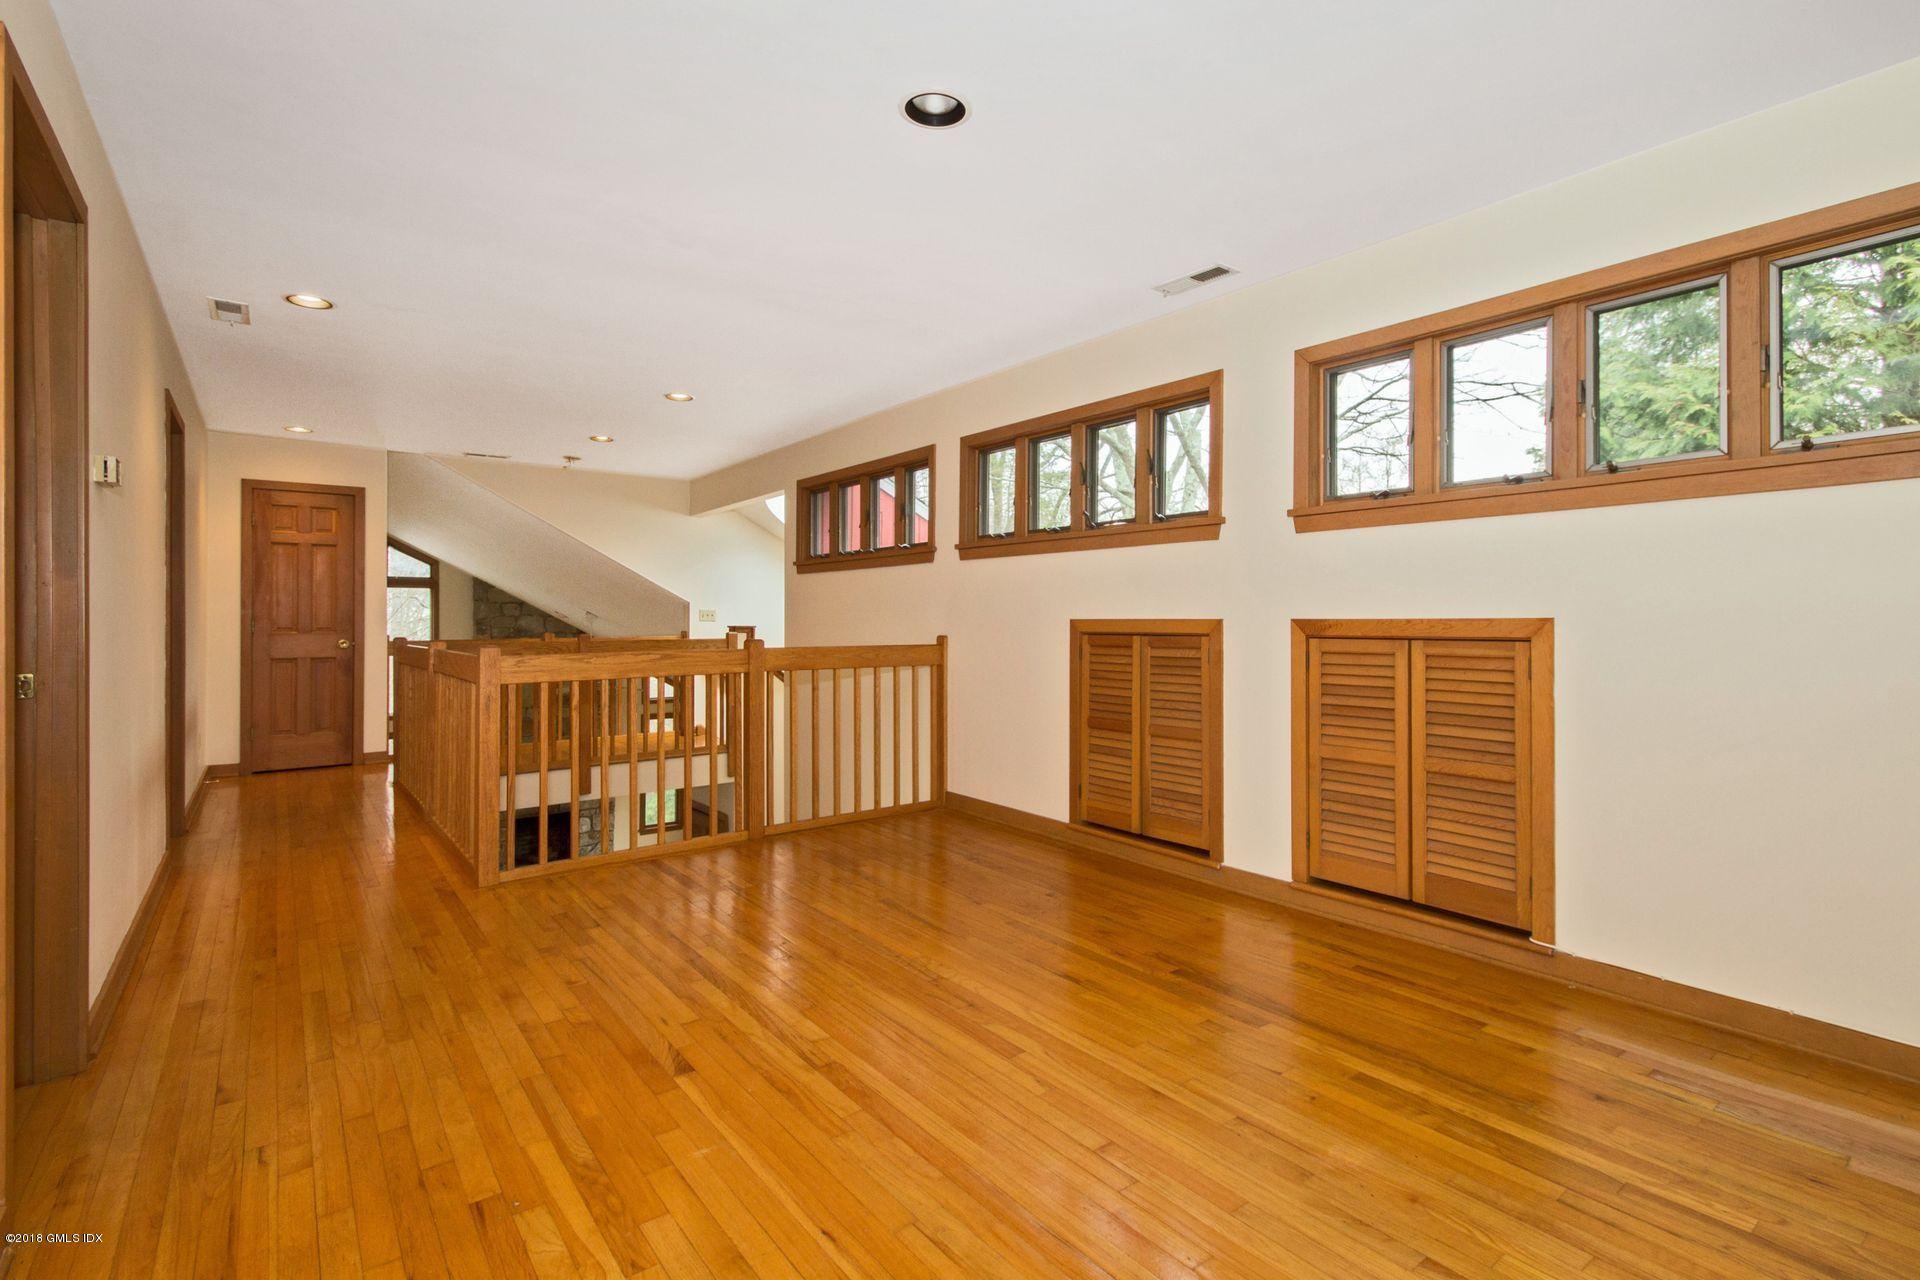 22 The Avenue,Greenwich,Connecticut 06831,4 Bedrooms Bedrooms,4 BathroomsBathrooms,Single family,The,102739